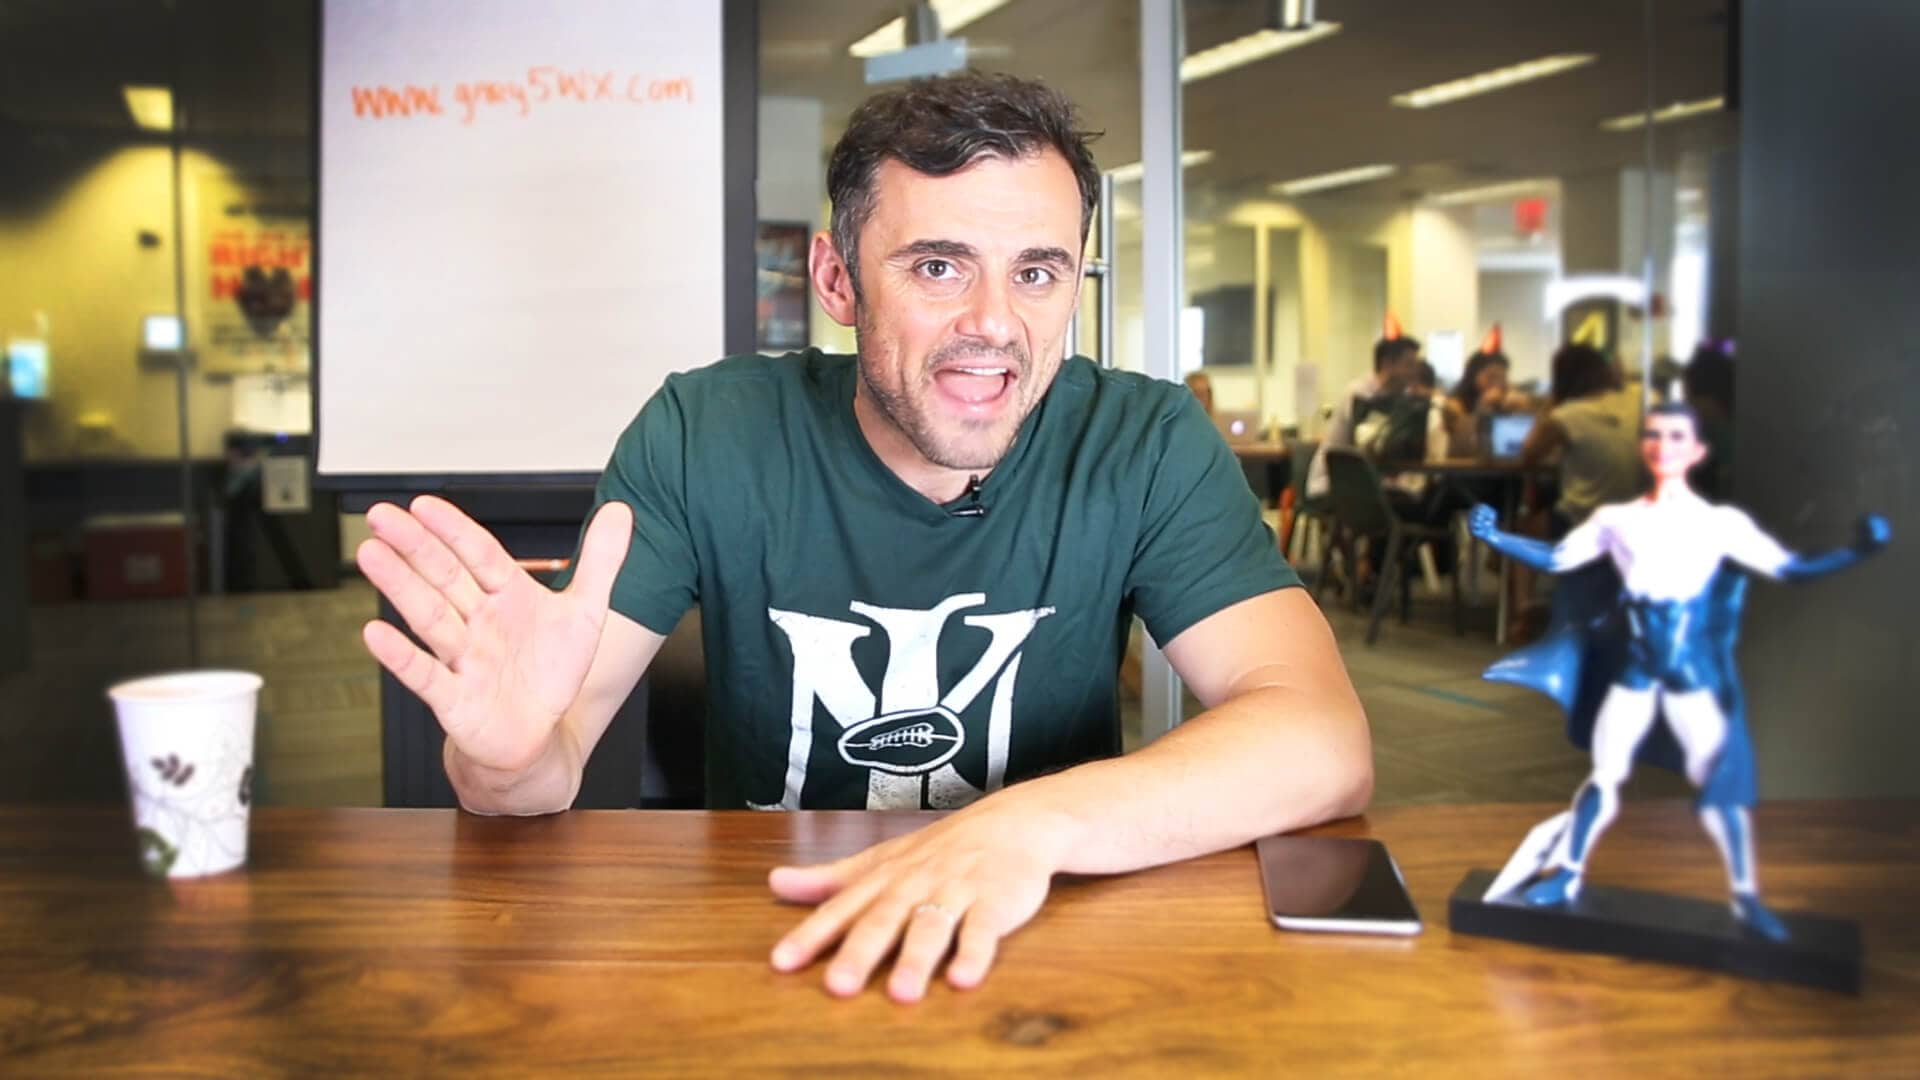 Gary Vaynerchuk announces the winners of his contest